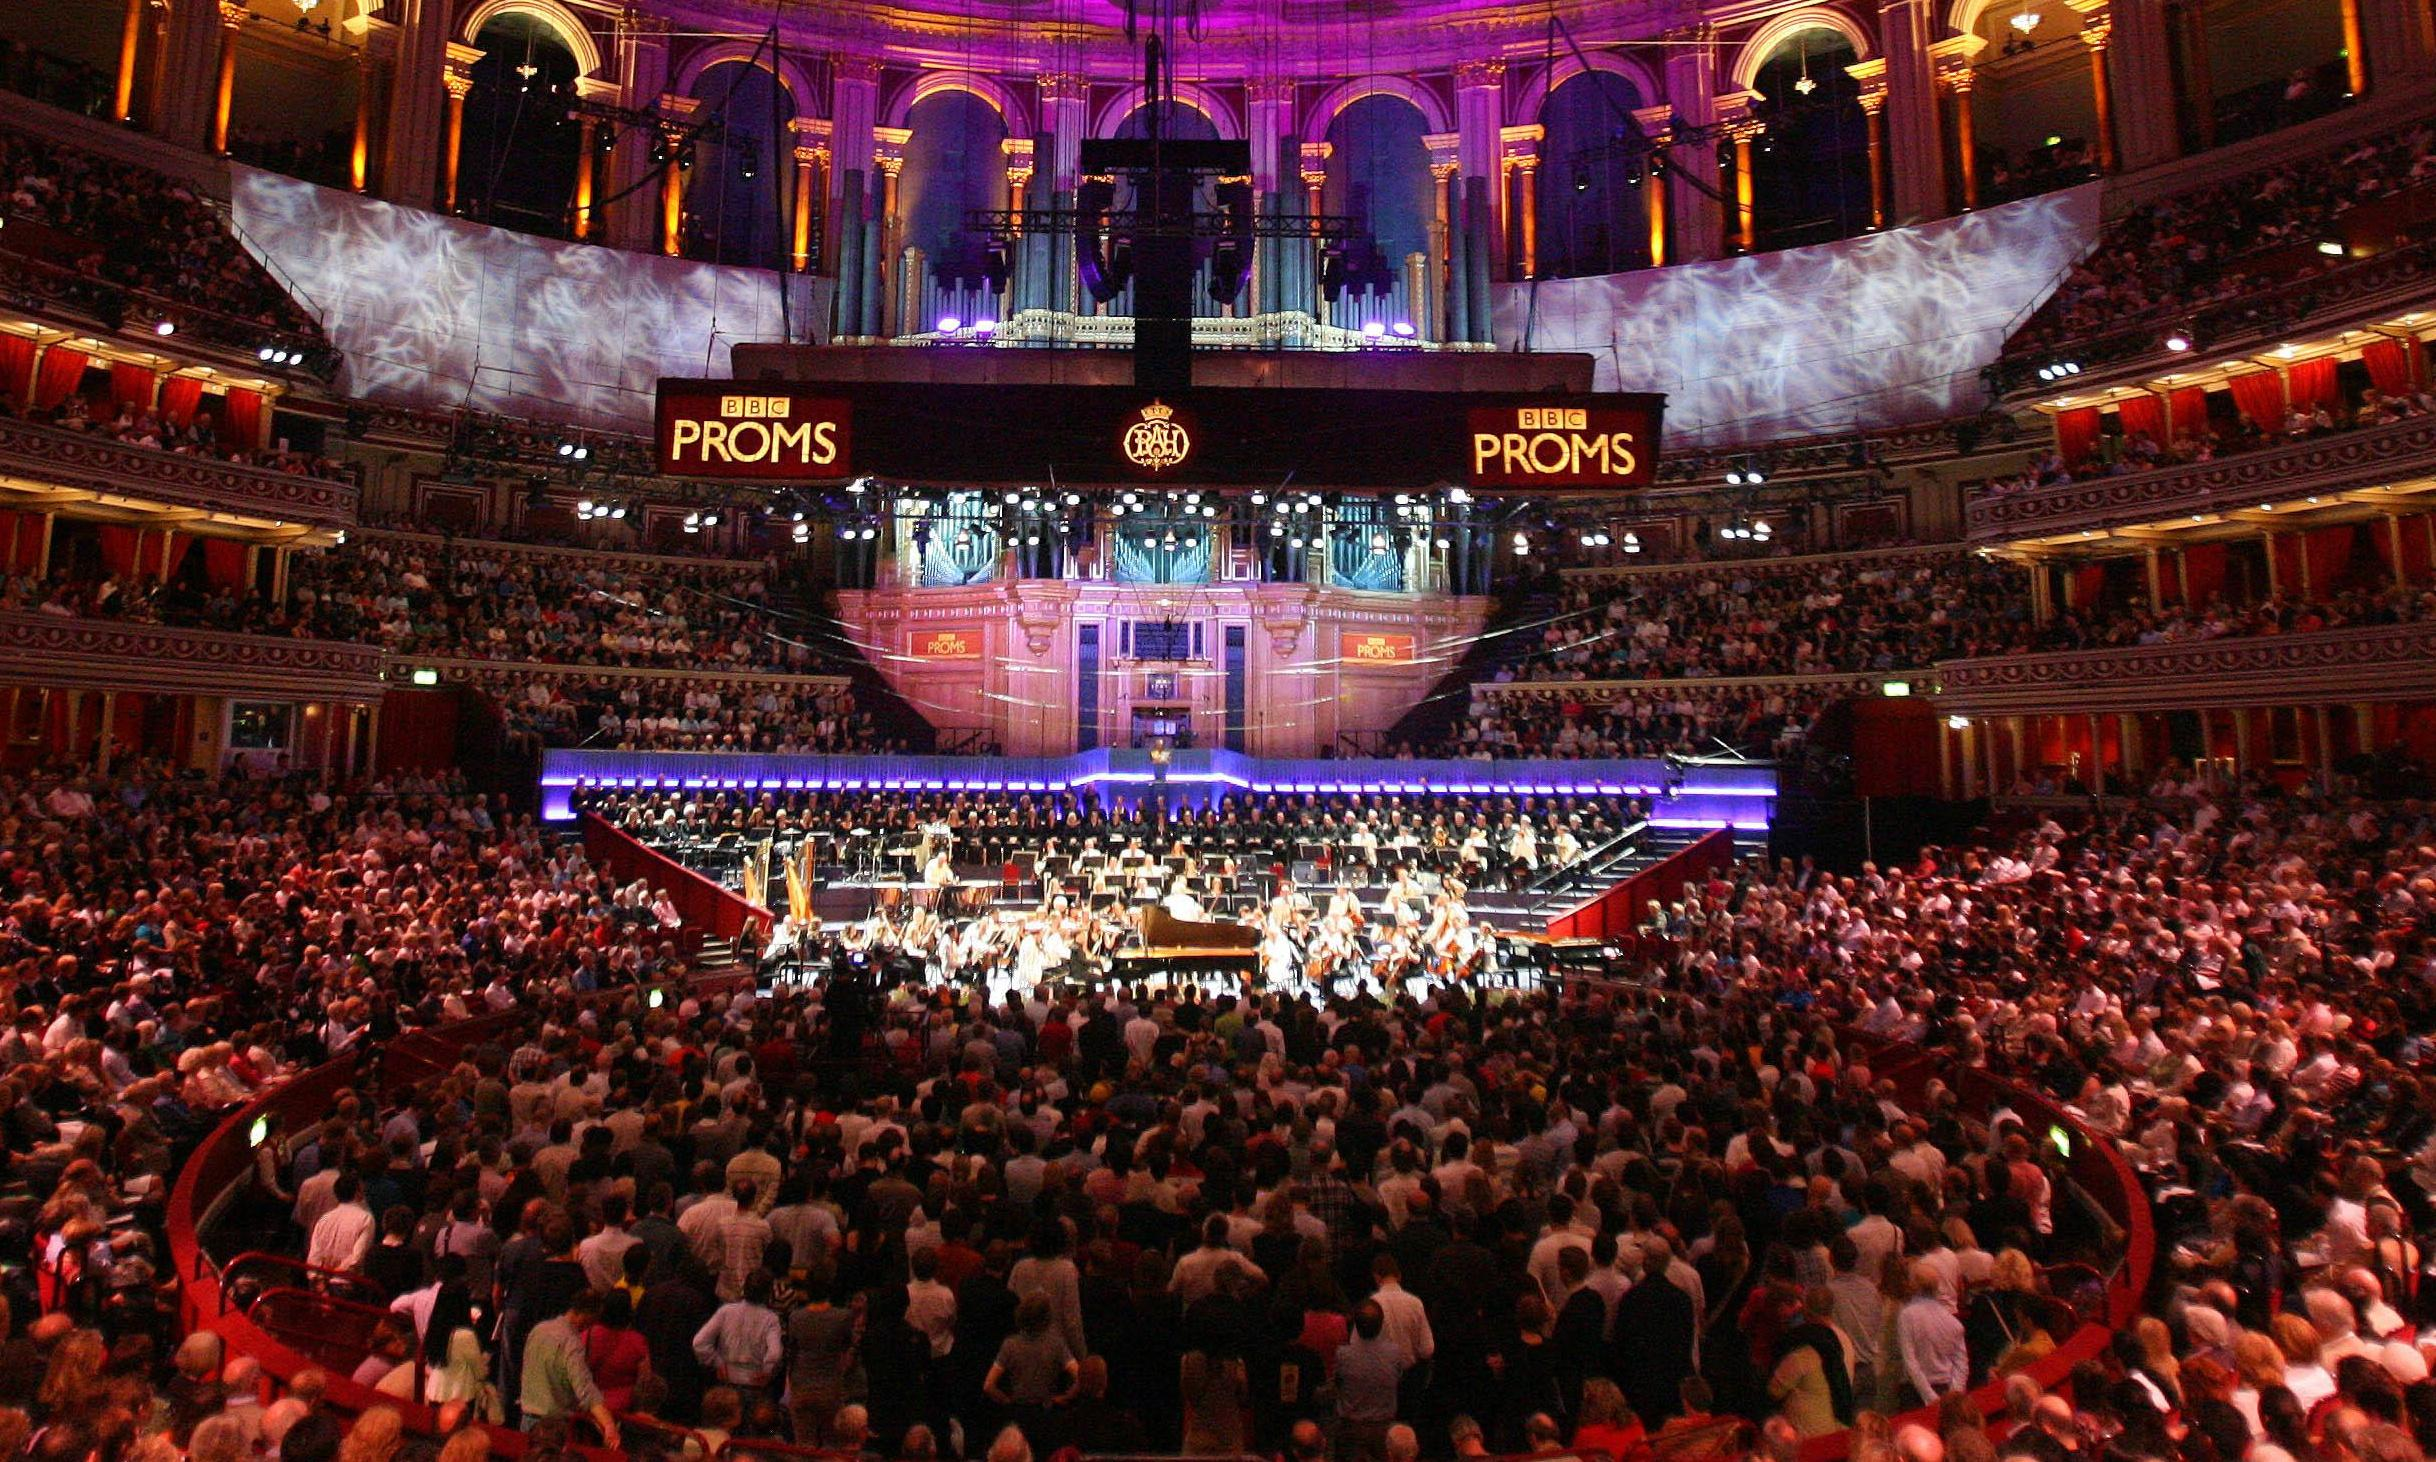 Proms in the dark: meditative music at the Royal Albert Hall